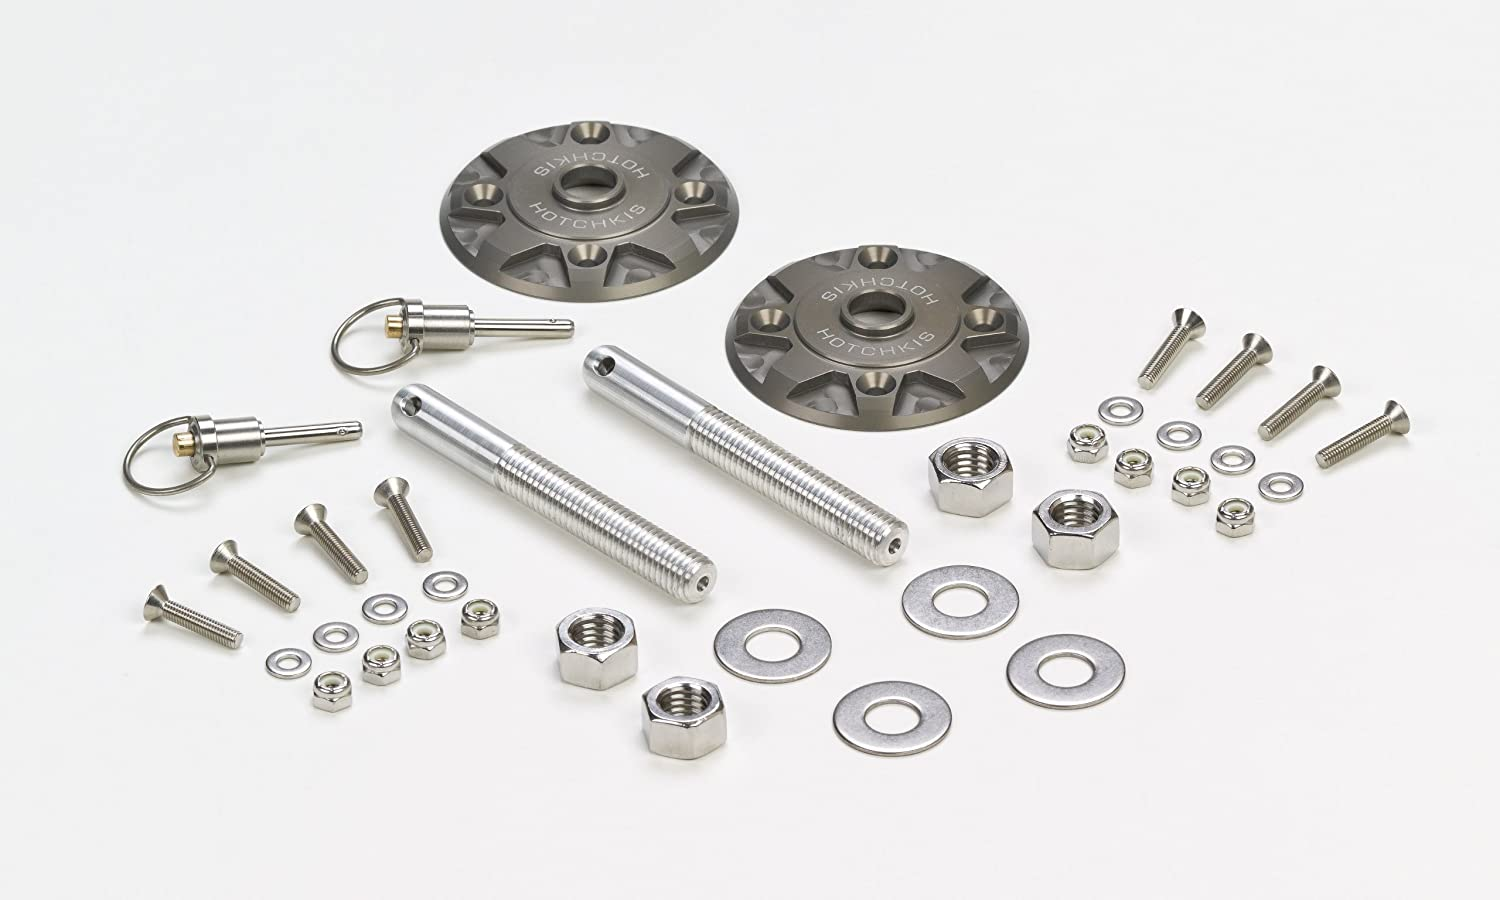 Hotchkis 1760 Billet Quick Release Hood Pin Kit Hotchkis Performance